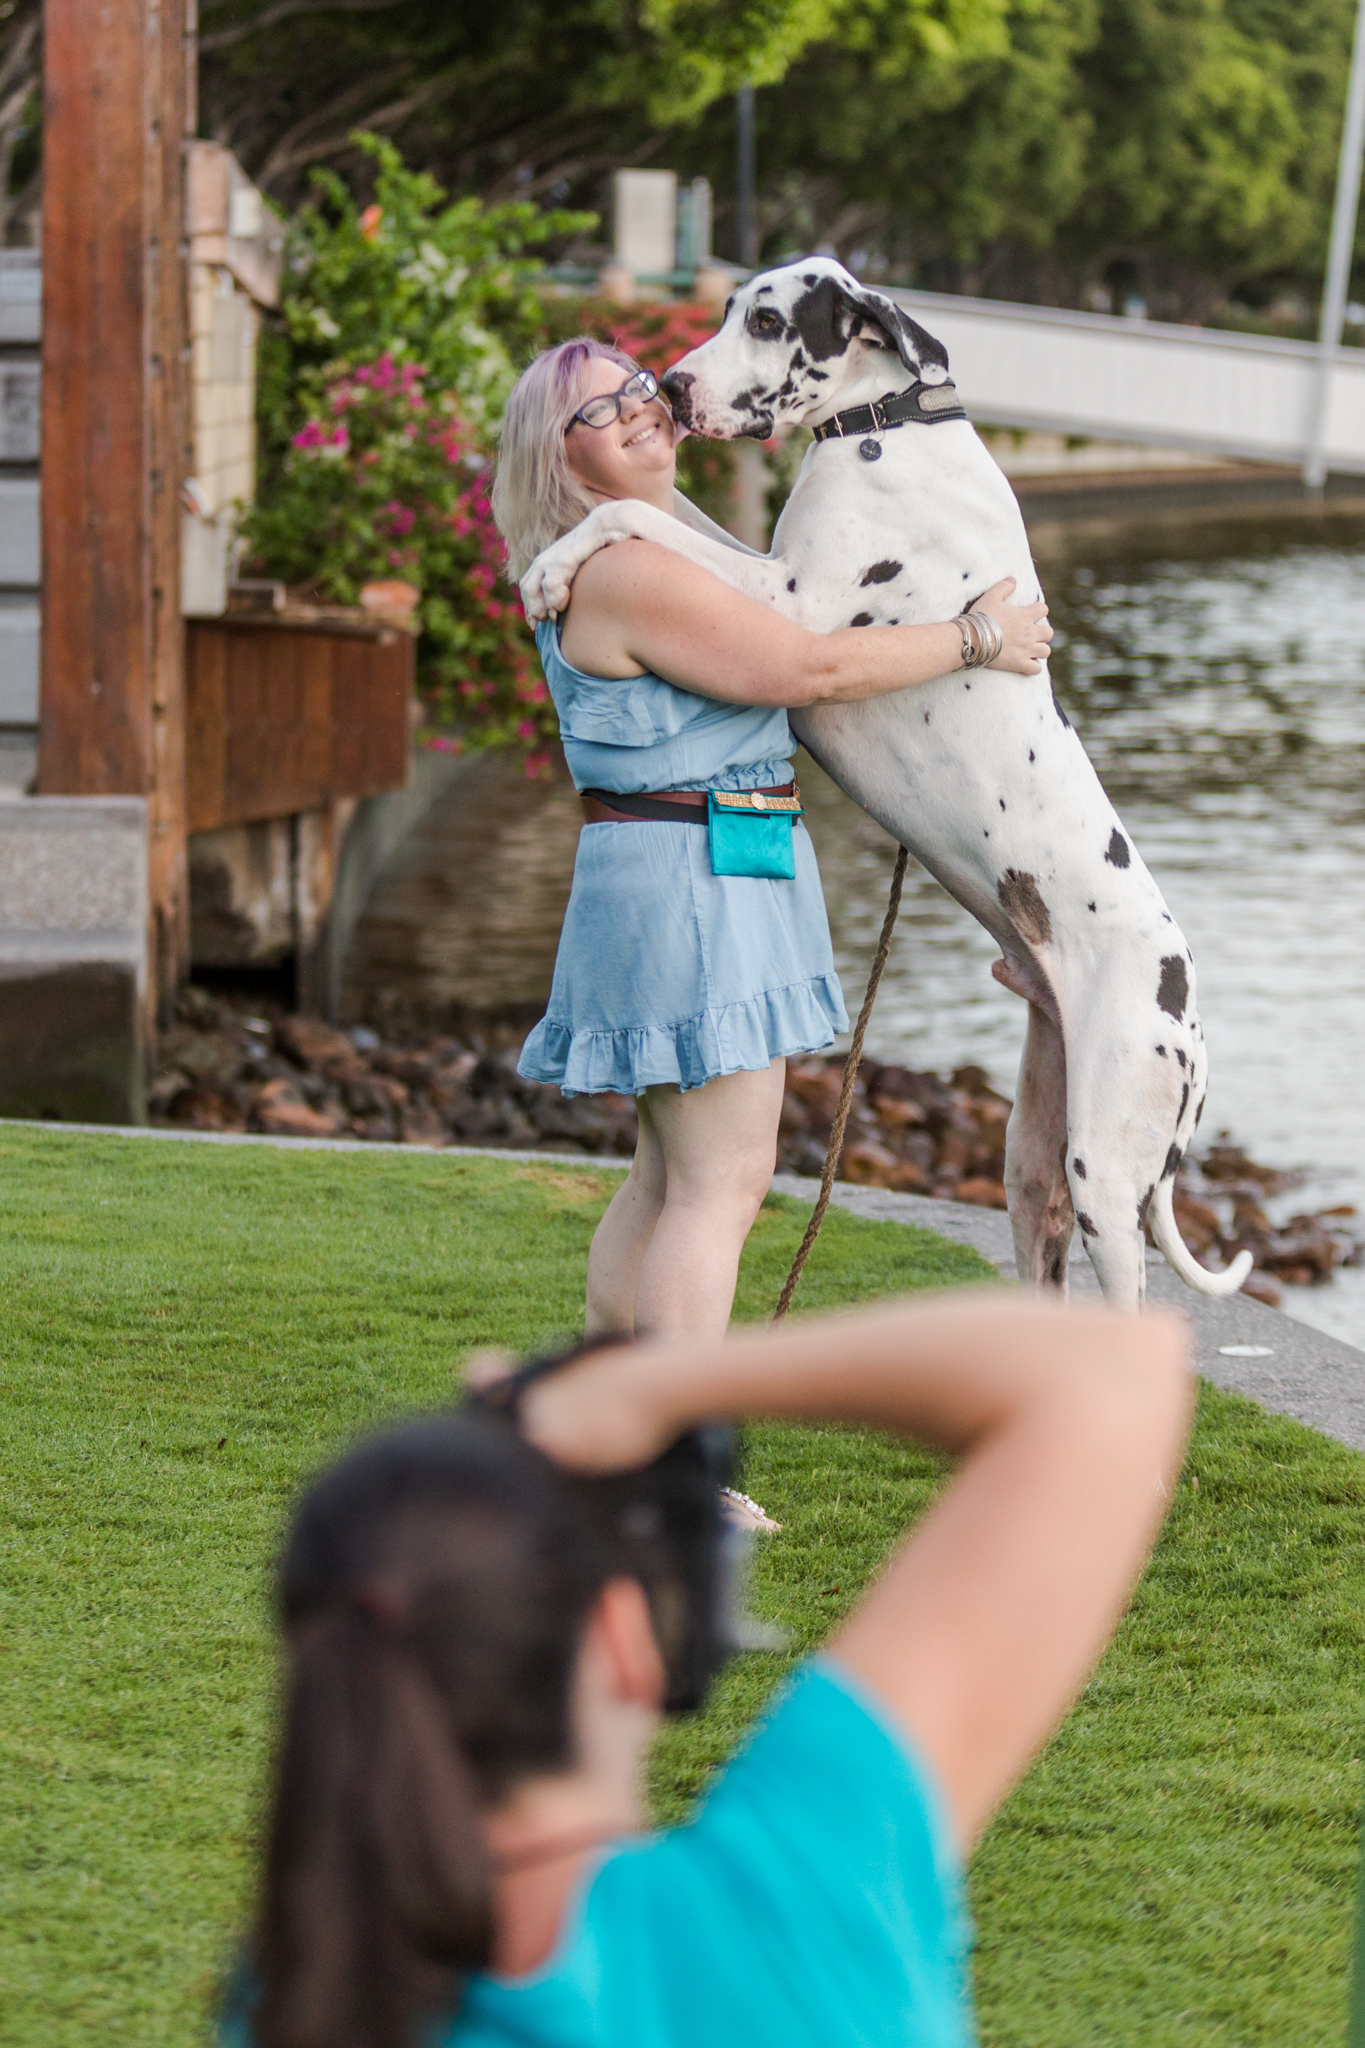 Do you want to get REAL serious about your passion for dog photography?